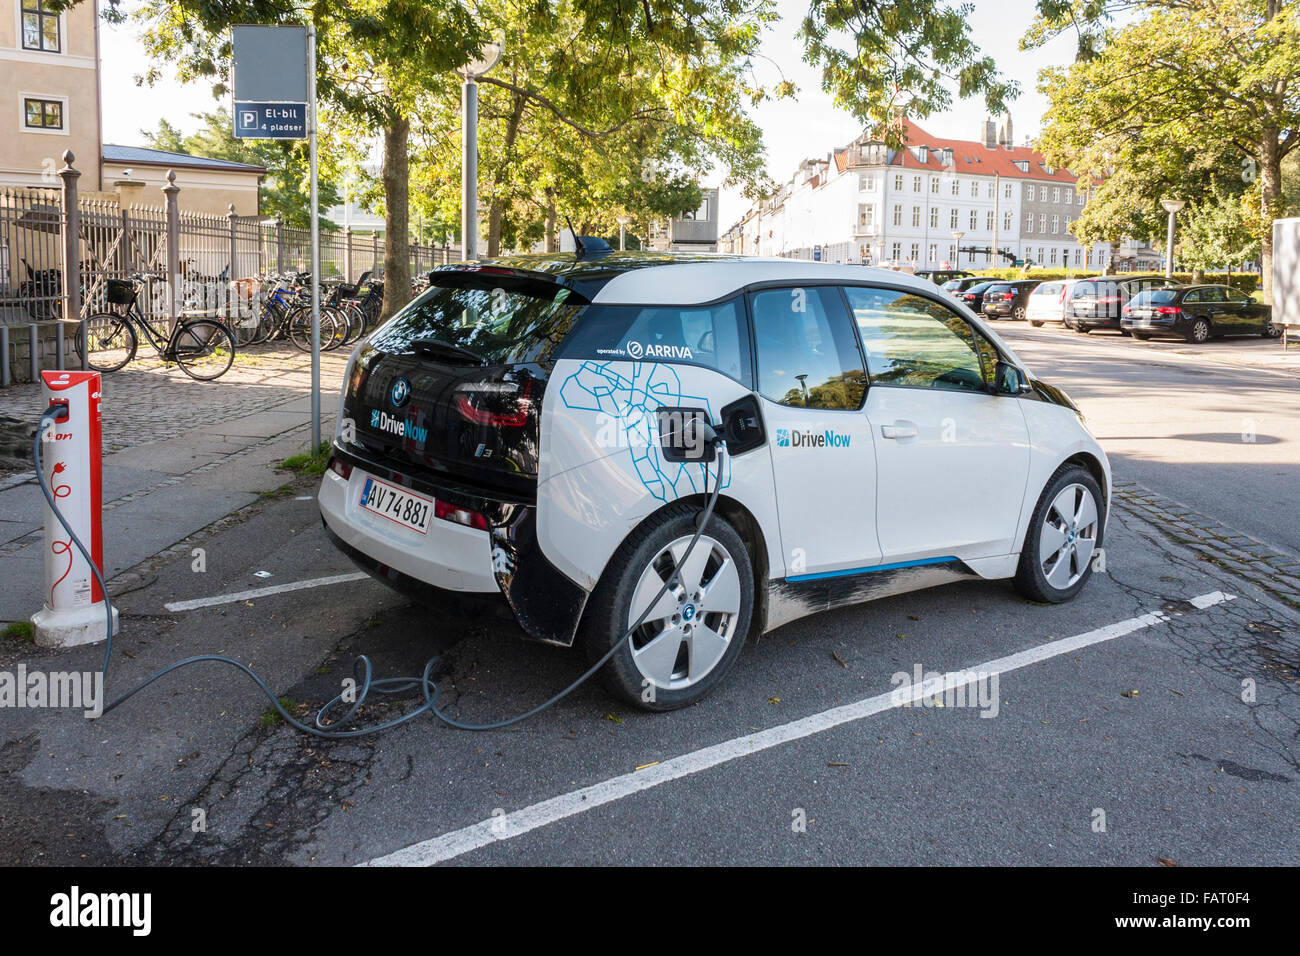 BMW i3 electric car being charged on street. Copenhagen, Denmark, Europe. - Stock Image